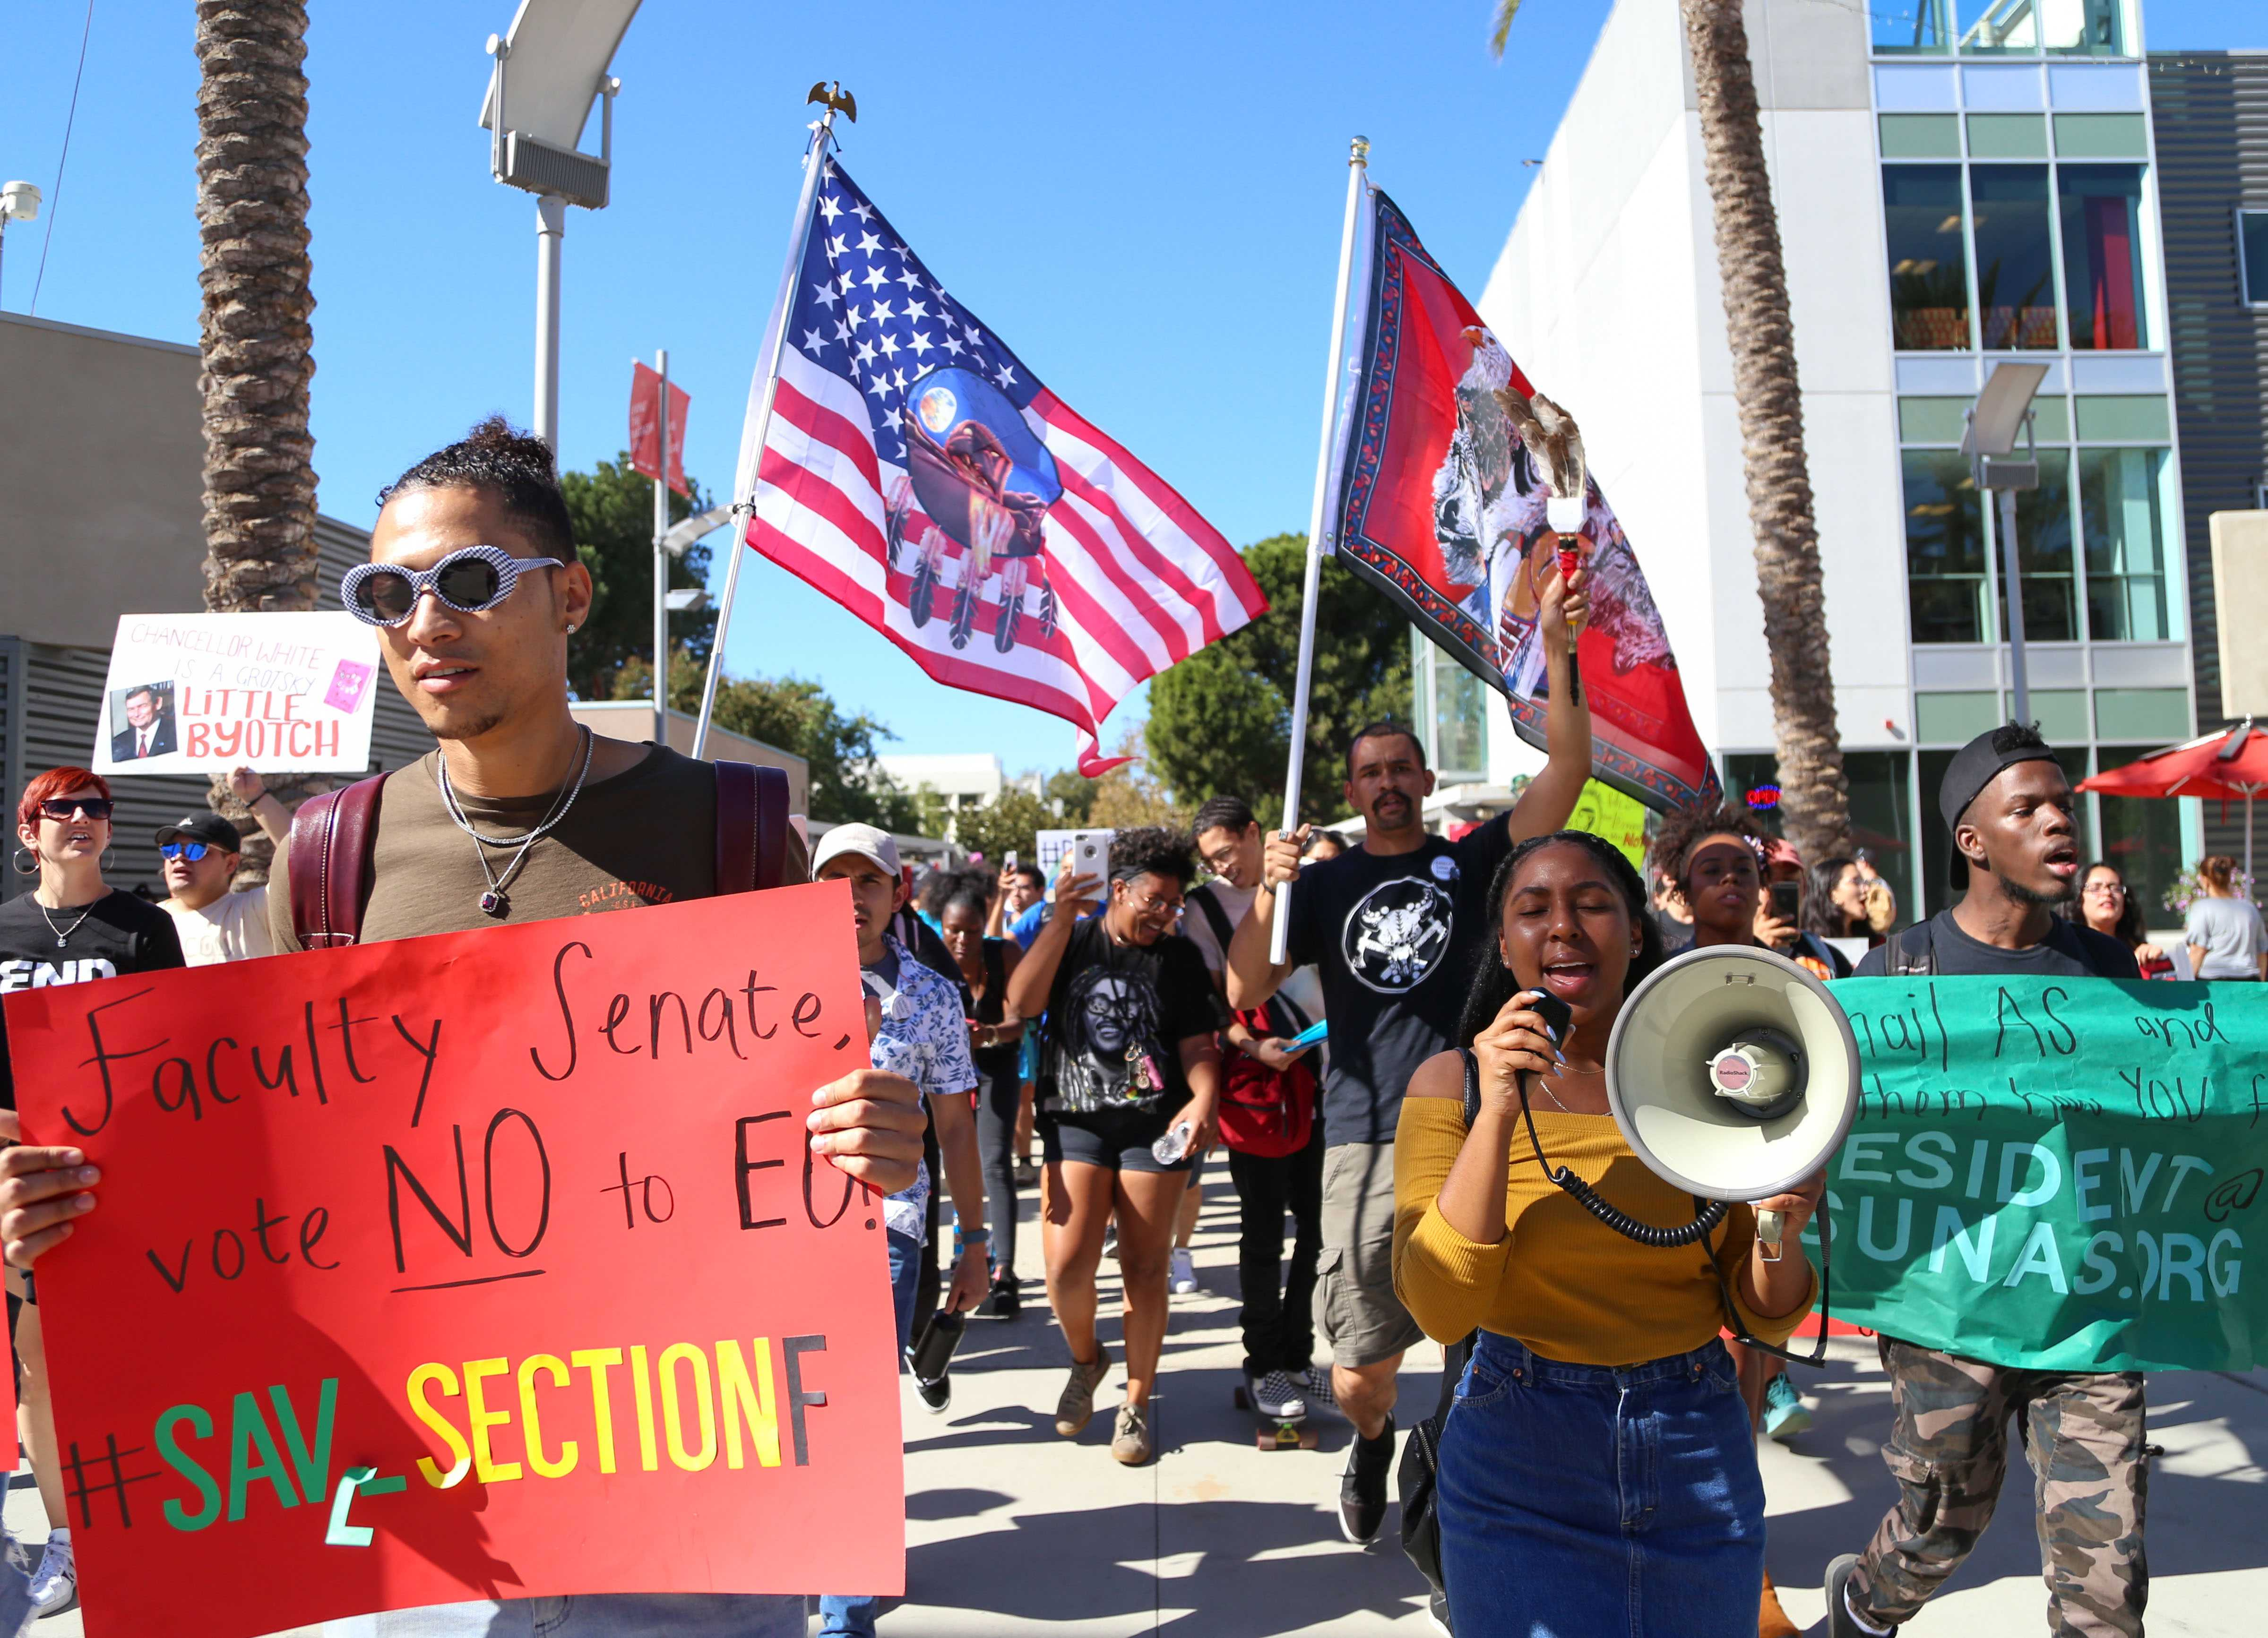 protestors holding different signs and flags